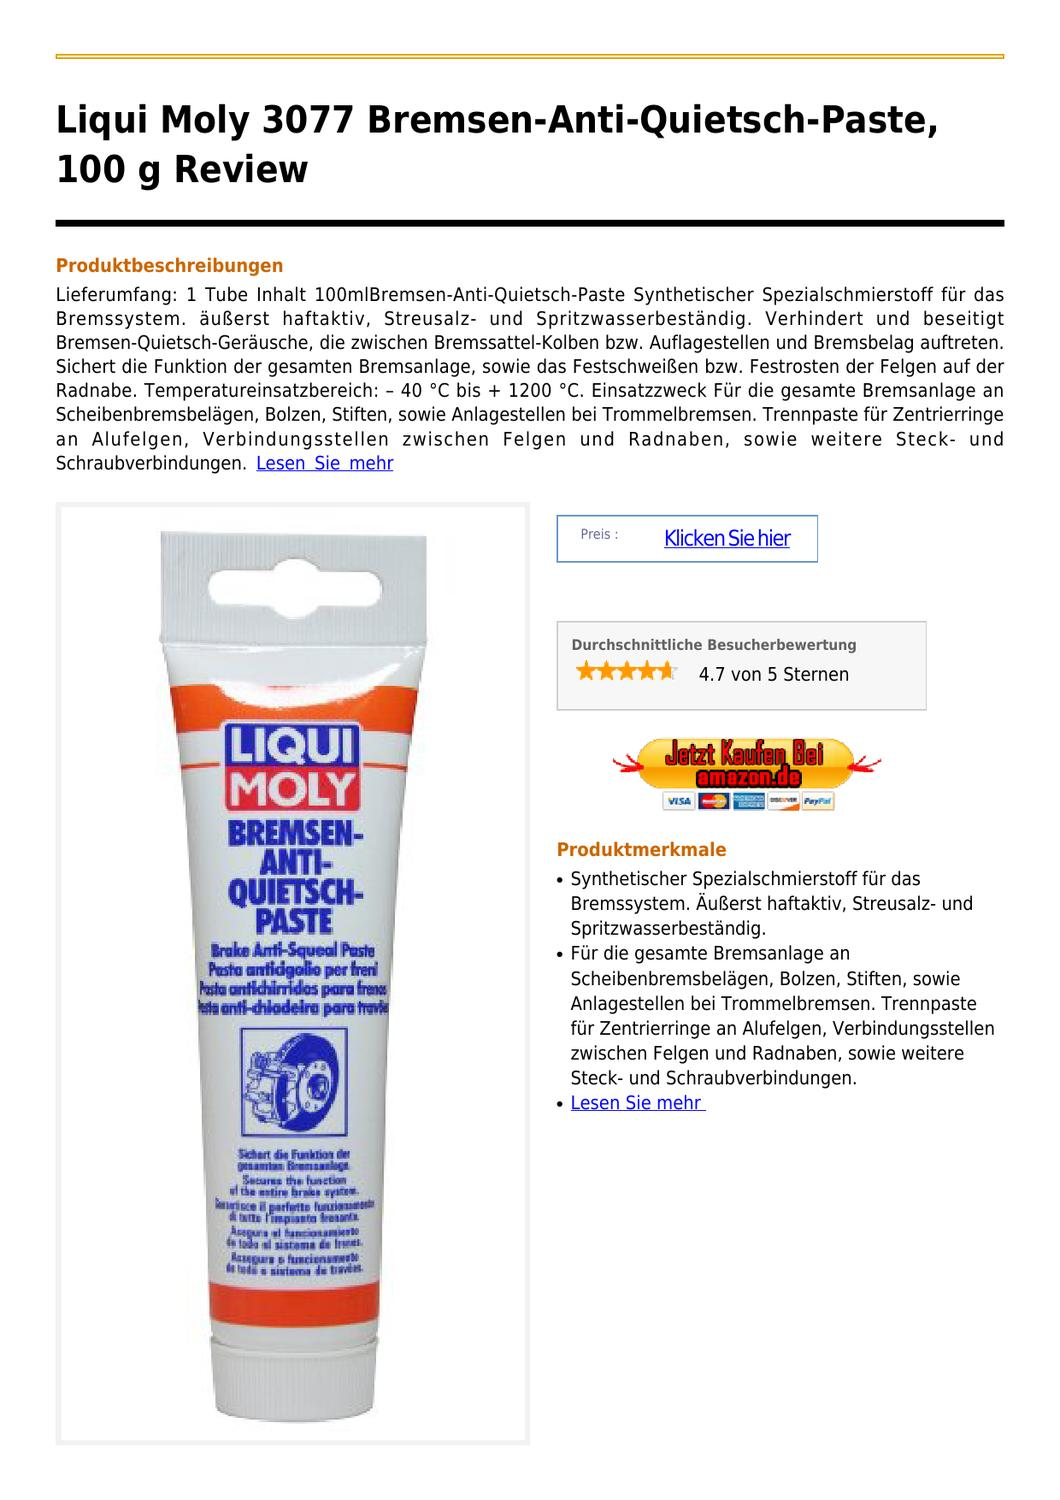 liqui moly 3077 bremsen anti quietsch paste 100 g by. Black Bedroom Furniture Sets. Home Design Ideas